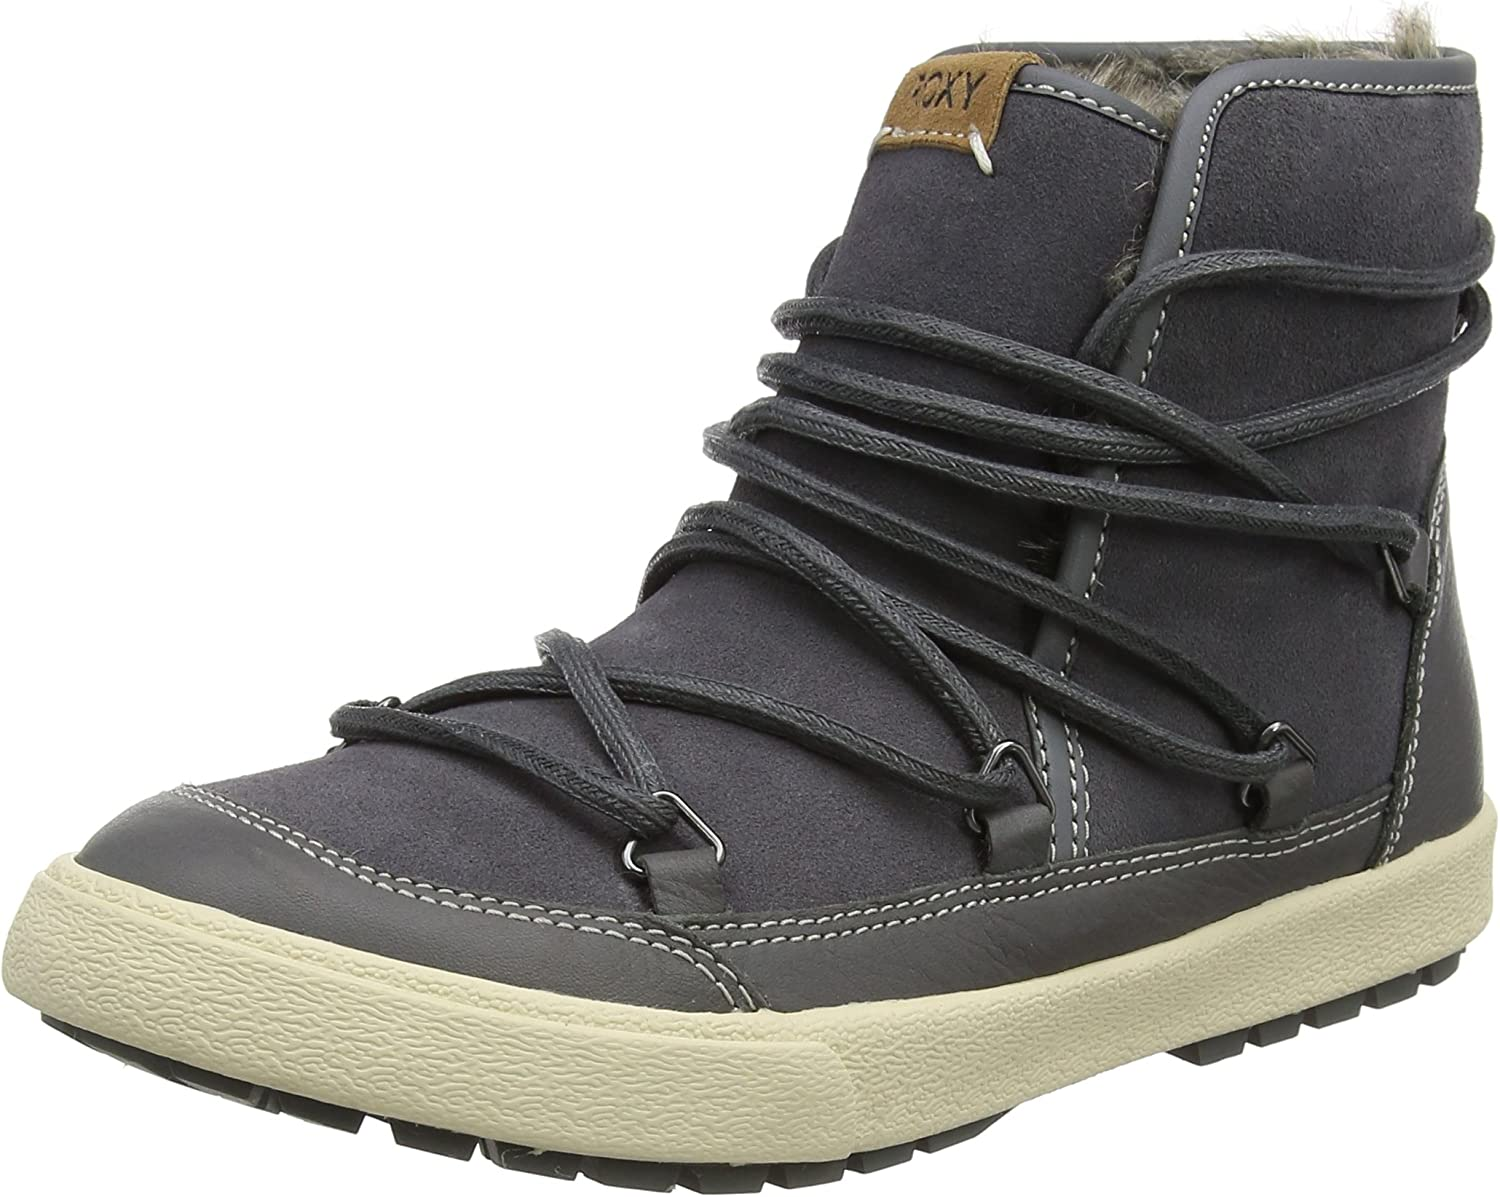 Roxy Boots Darwin Leather Snow Boots - C. Grey